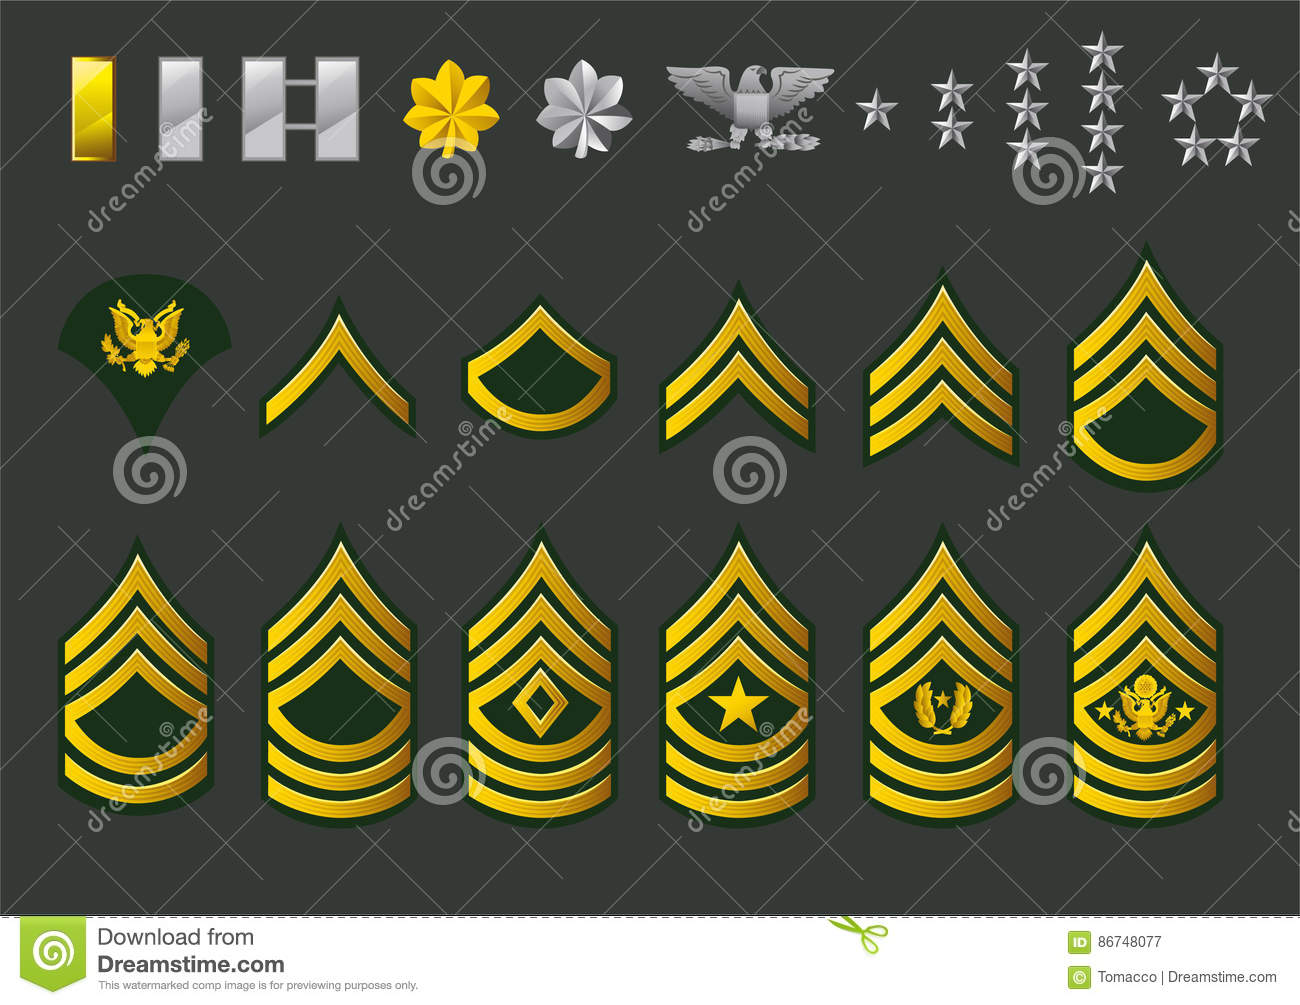 American Army Enlisted Rank Insignia Icons Cartoon Vector